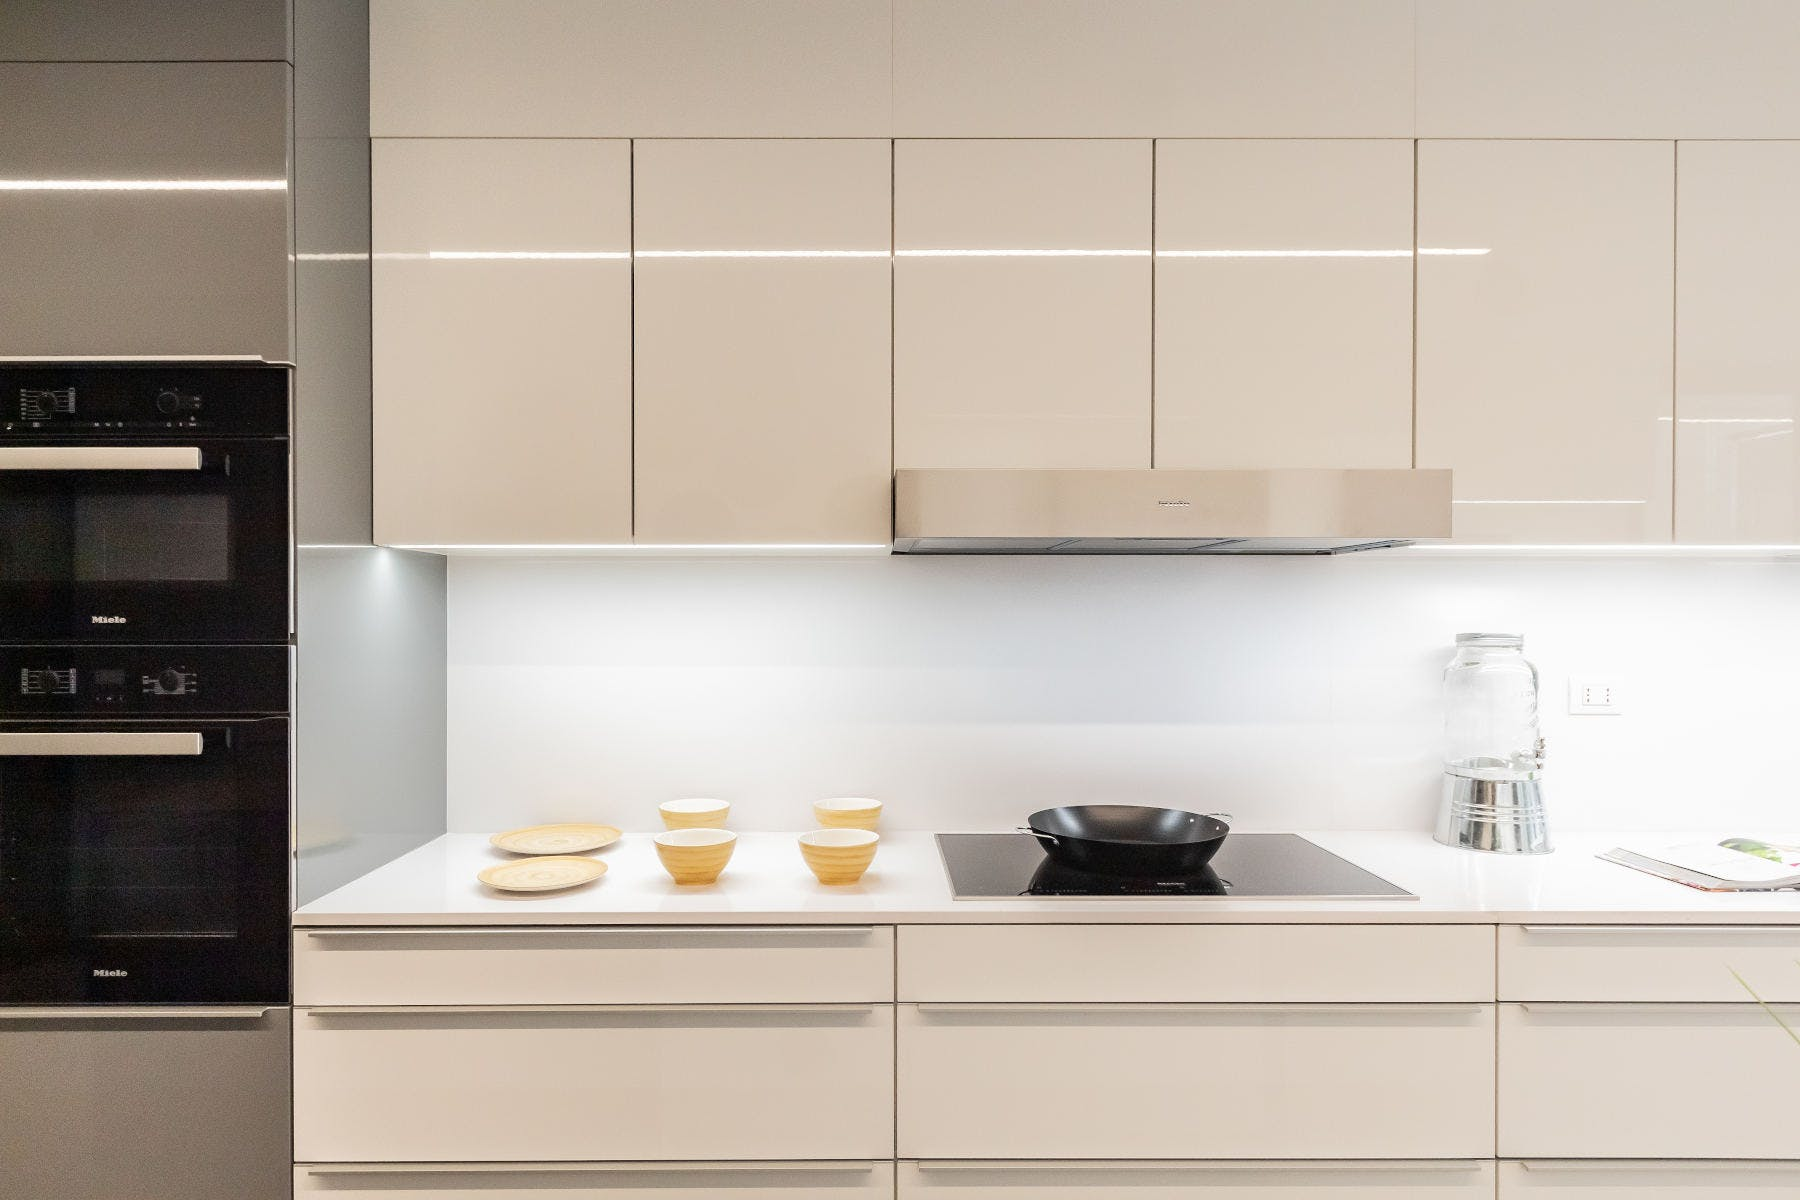 Image of IMG 3115 1 in How to organise your kitchen and keep it that way - Cosentino